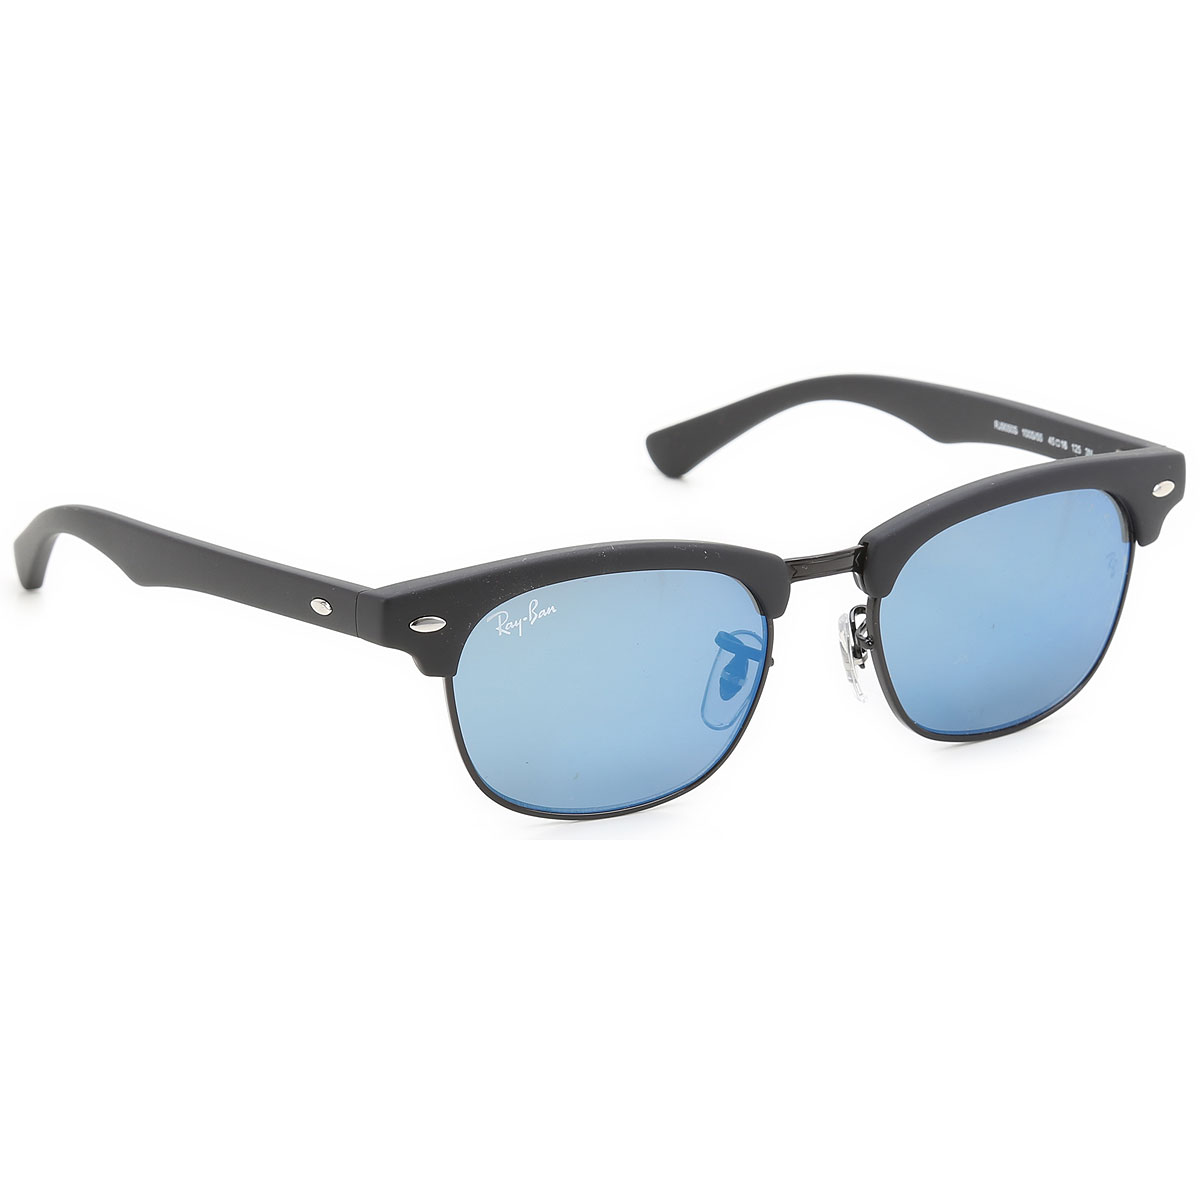 Ray Ban Boys Sunglasses On Sale, 2017 USA-364640